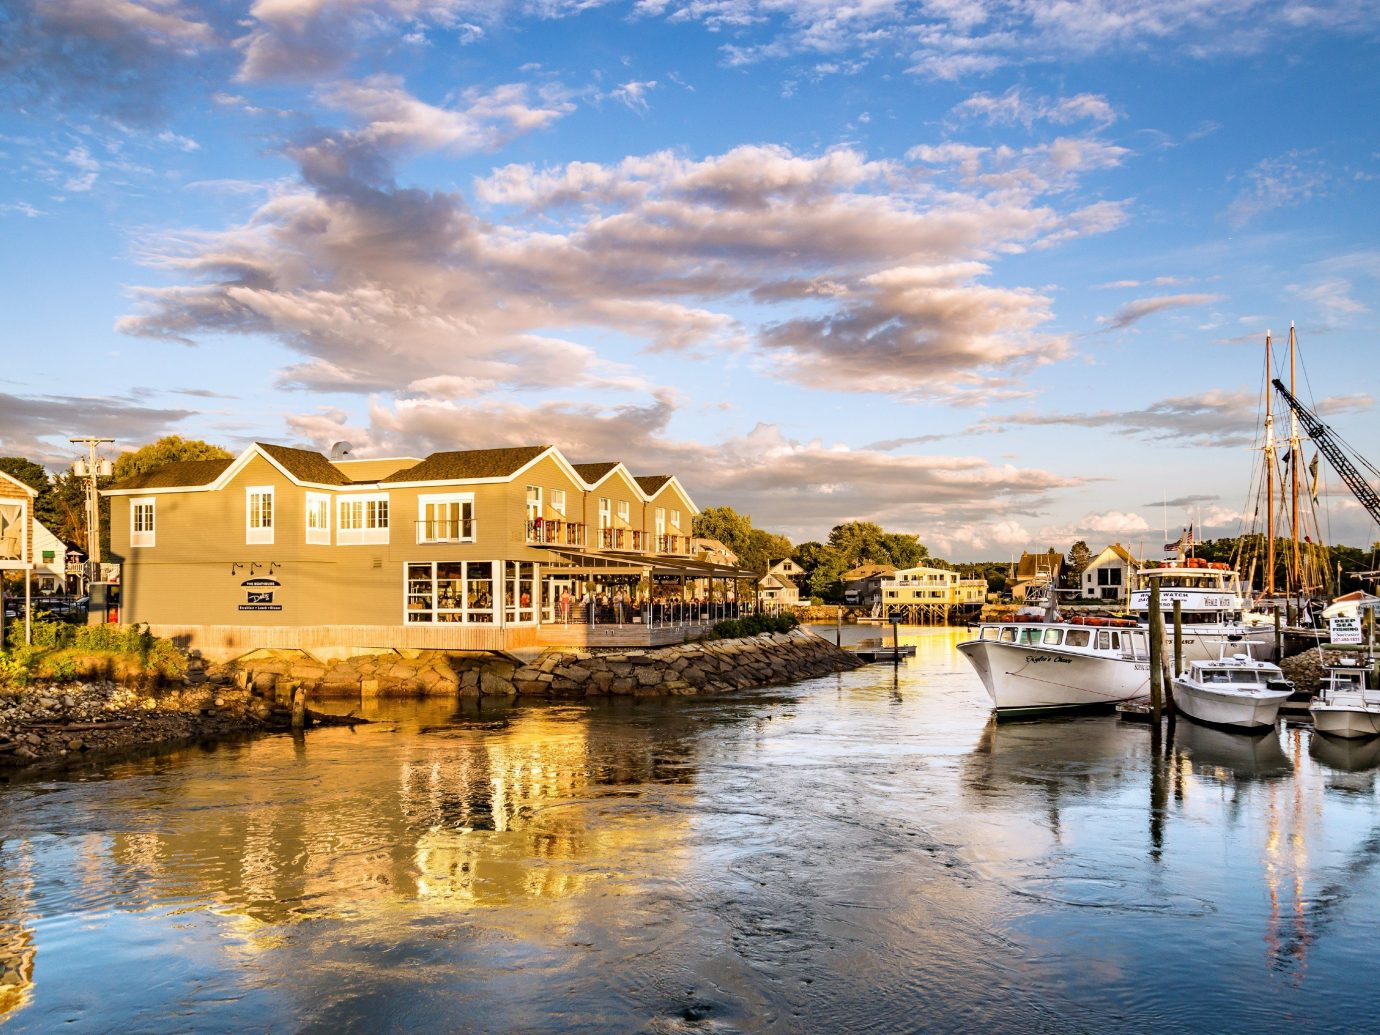 Road Trips Trip Ideas Weekend Getaways outdoor water sky scene Harbor Boat reflection marina body of water Sea Town dock vacation River evening cityscape dusk vehicle bay waterway Resort docked Sunset several